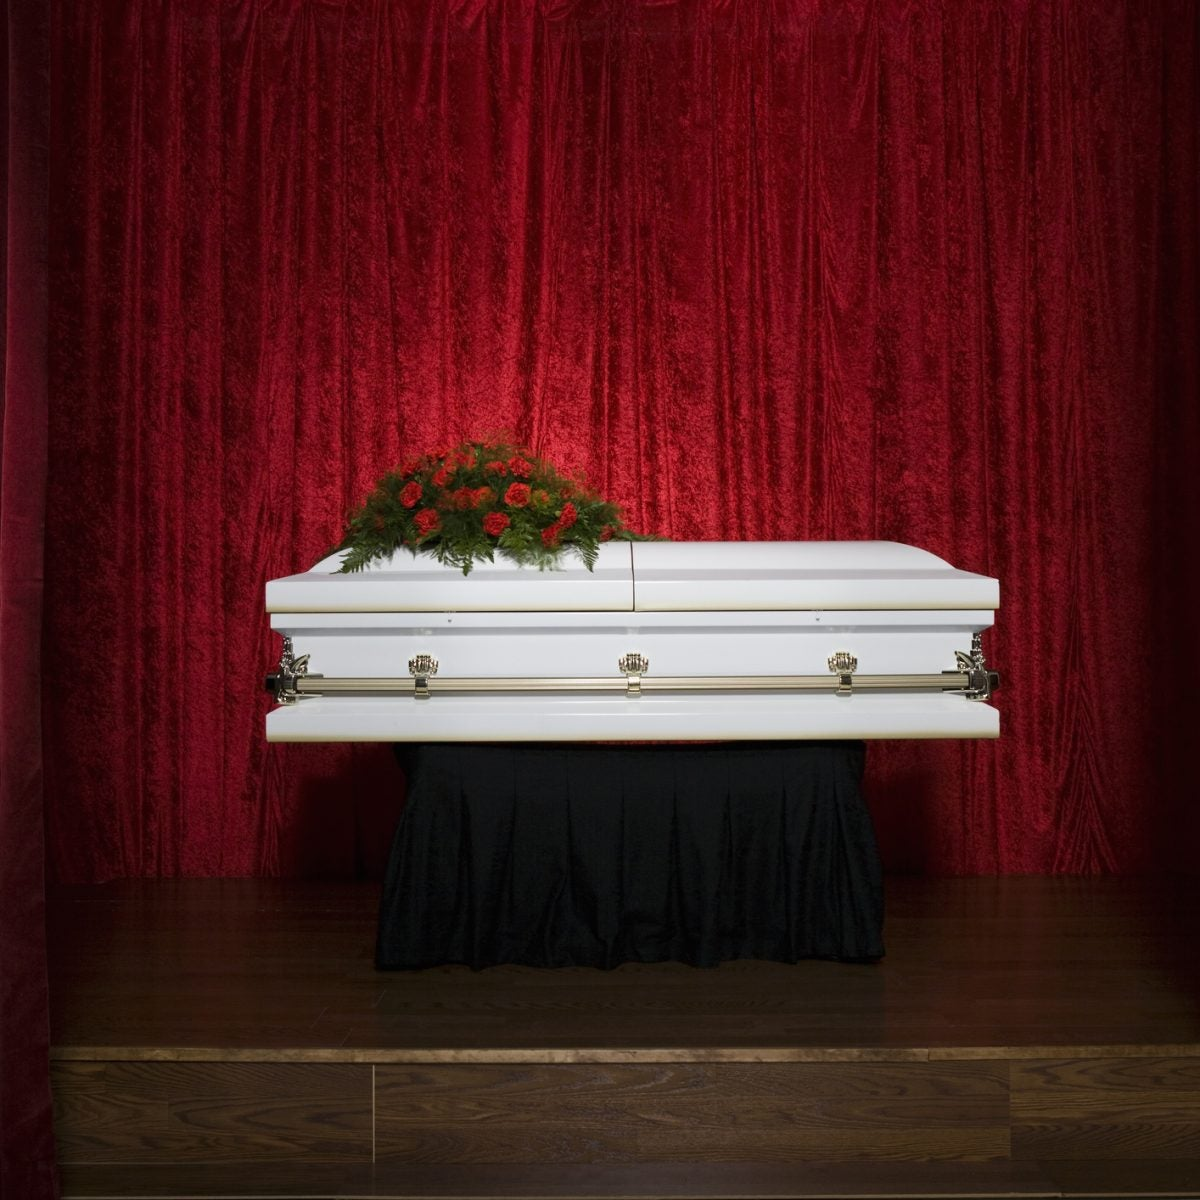 COVID-19 Has Changed The Way We Grieve And Honor Our Dead